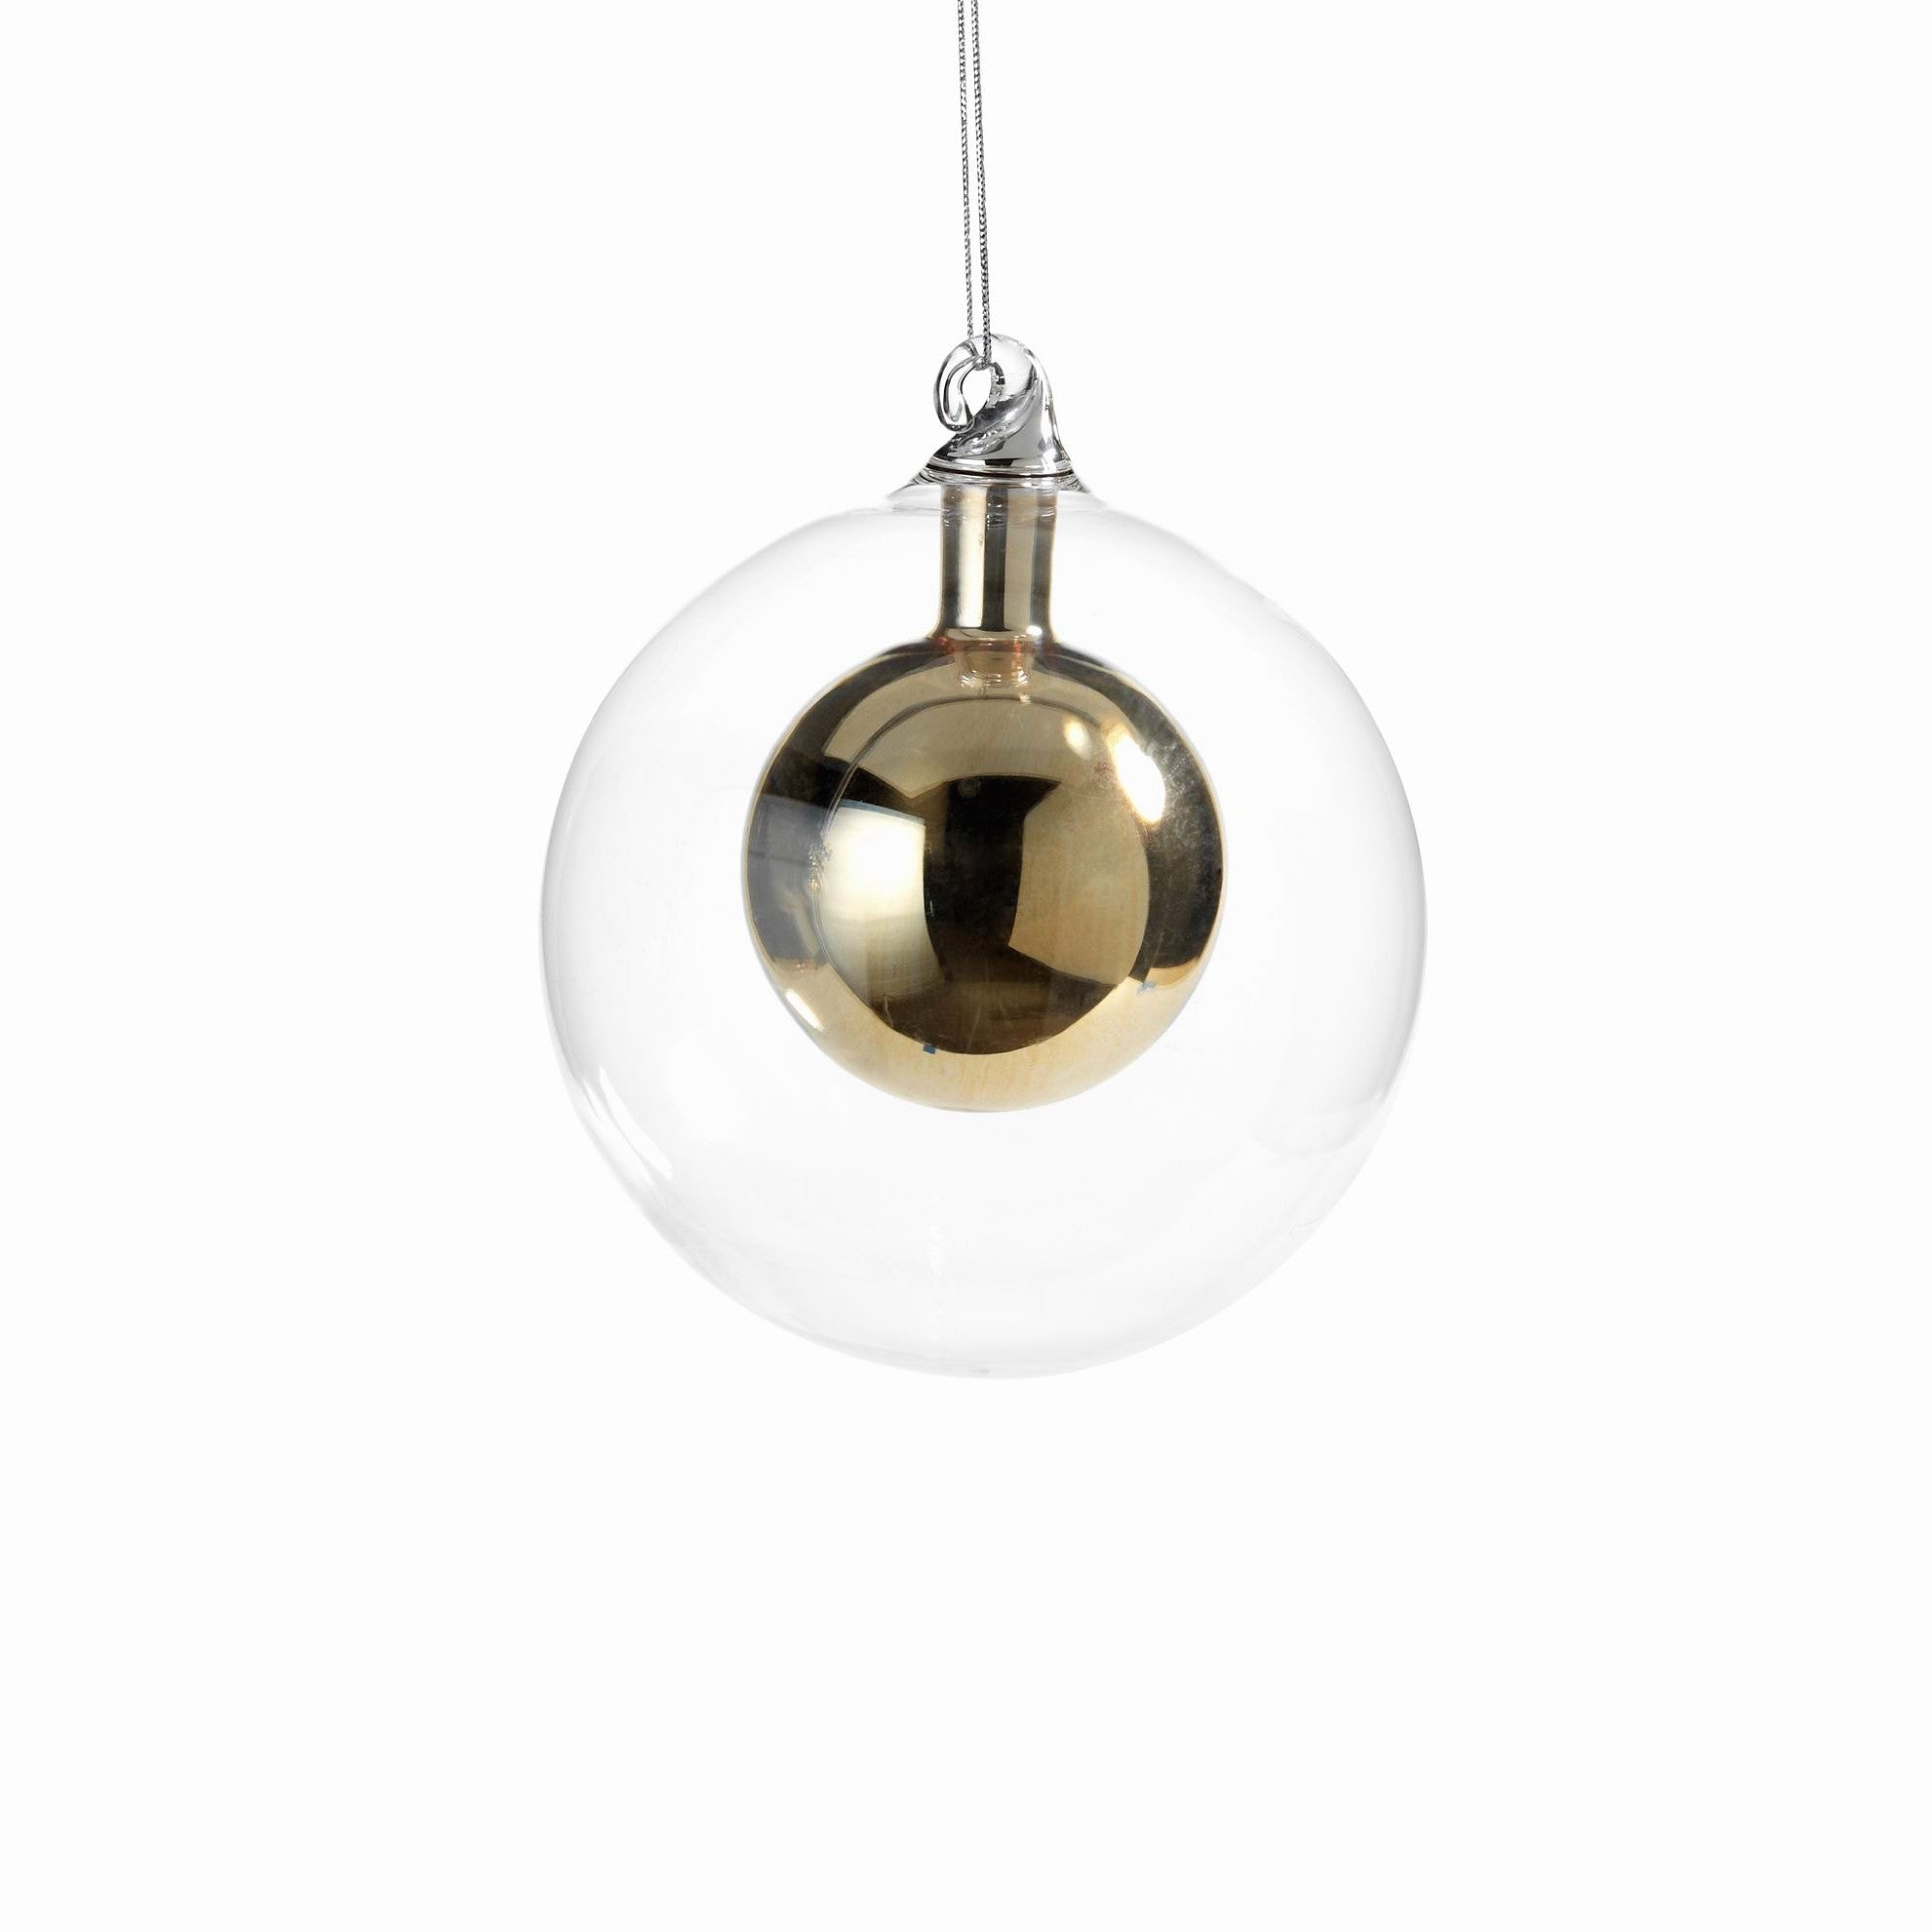 Double Glass Ball Ornament - Gold - CARLYLE AVENUE